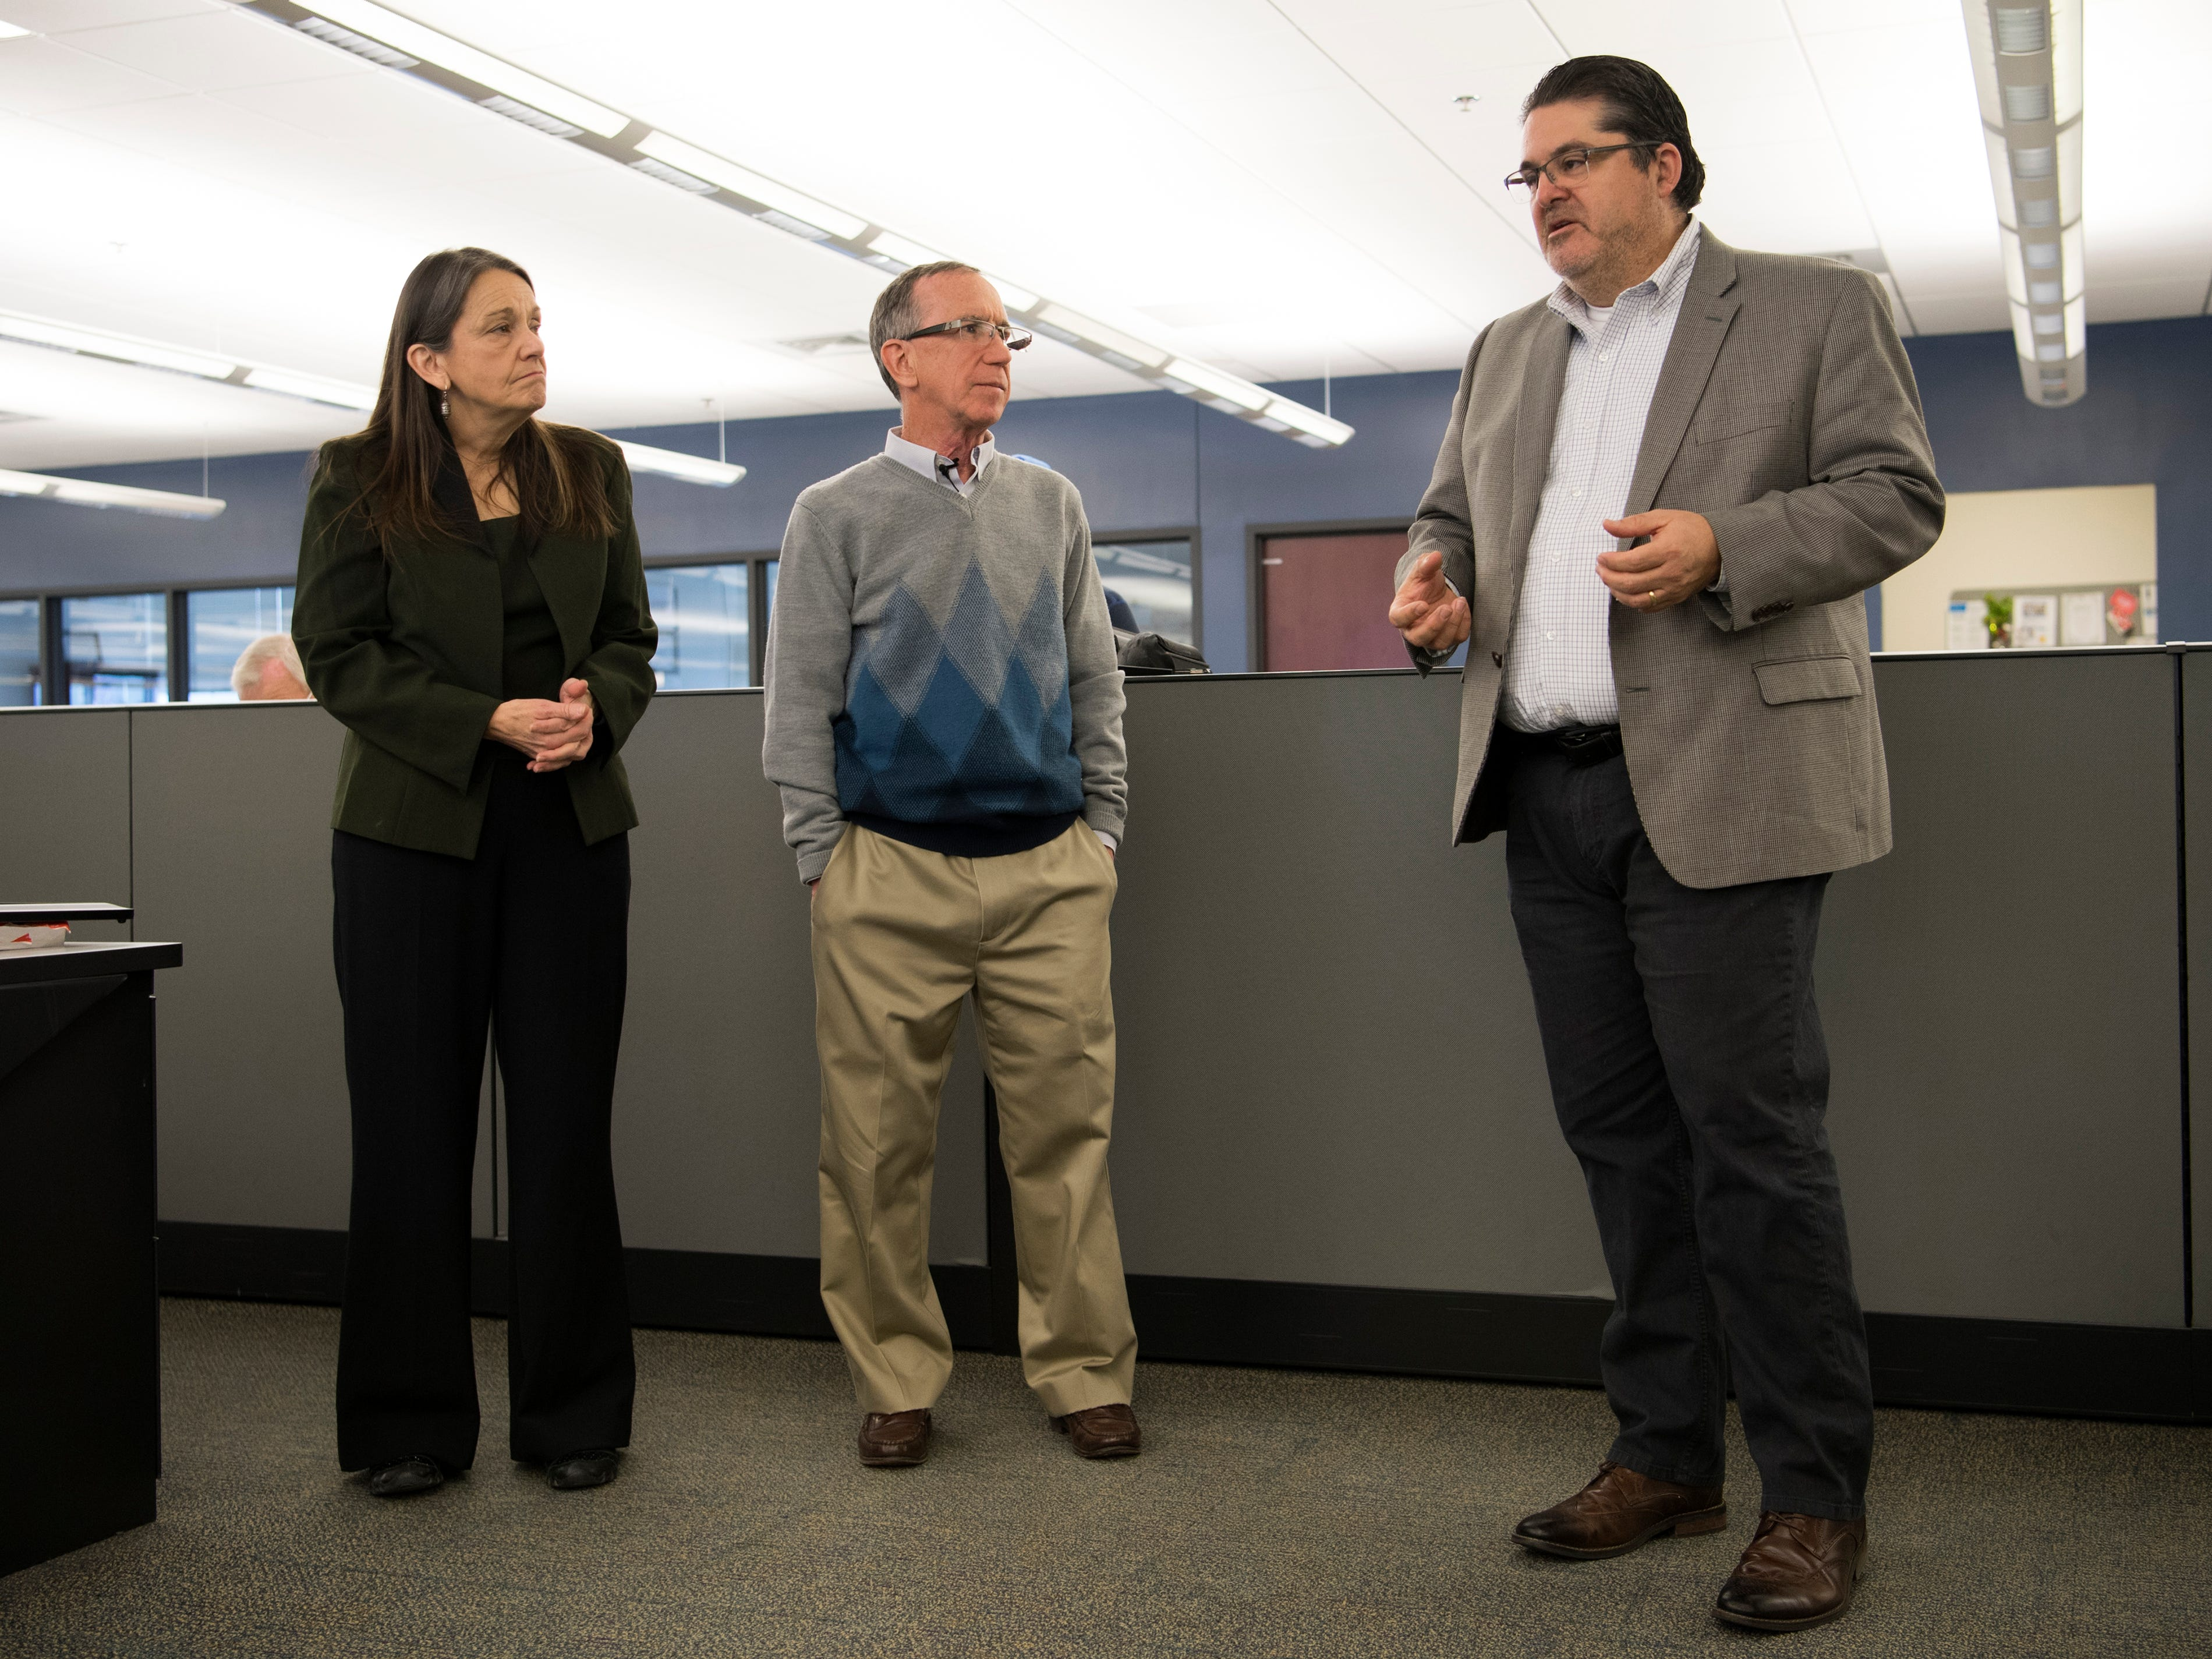 Michael Anastasi, Vice President/News for USA TODAY NETWORK Tennessee, at right, speaks during a celebration for the retirements of executive editor Jack McElroy and cartoonist Charlie Daniel in the News Sentinel newsroom on Friday, February 1, 2019.